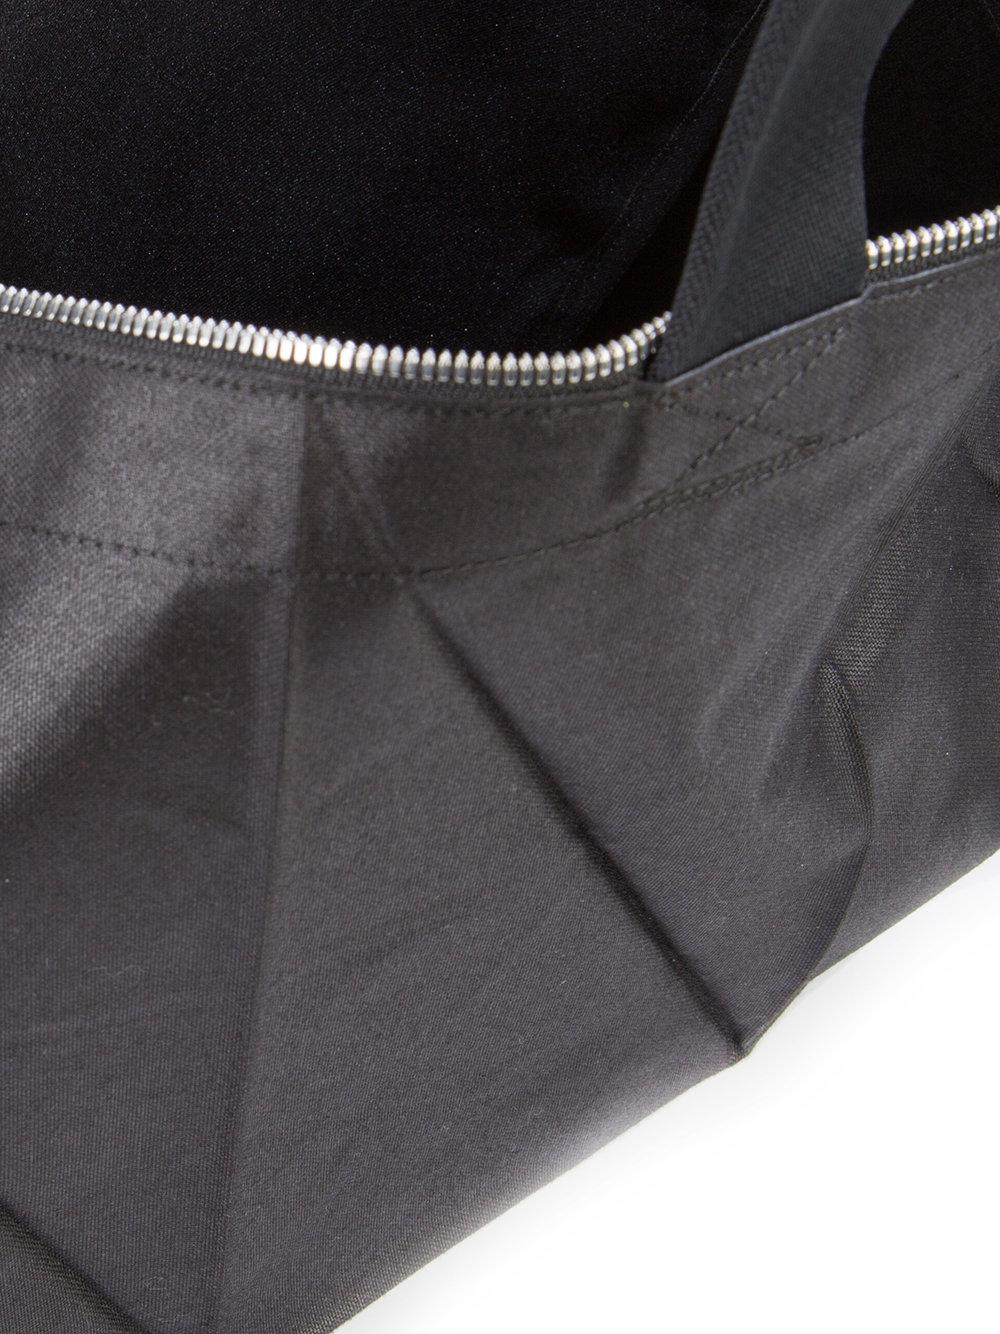 Issey Miyake Canvas Glossy Origami Structured Tote in Black